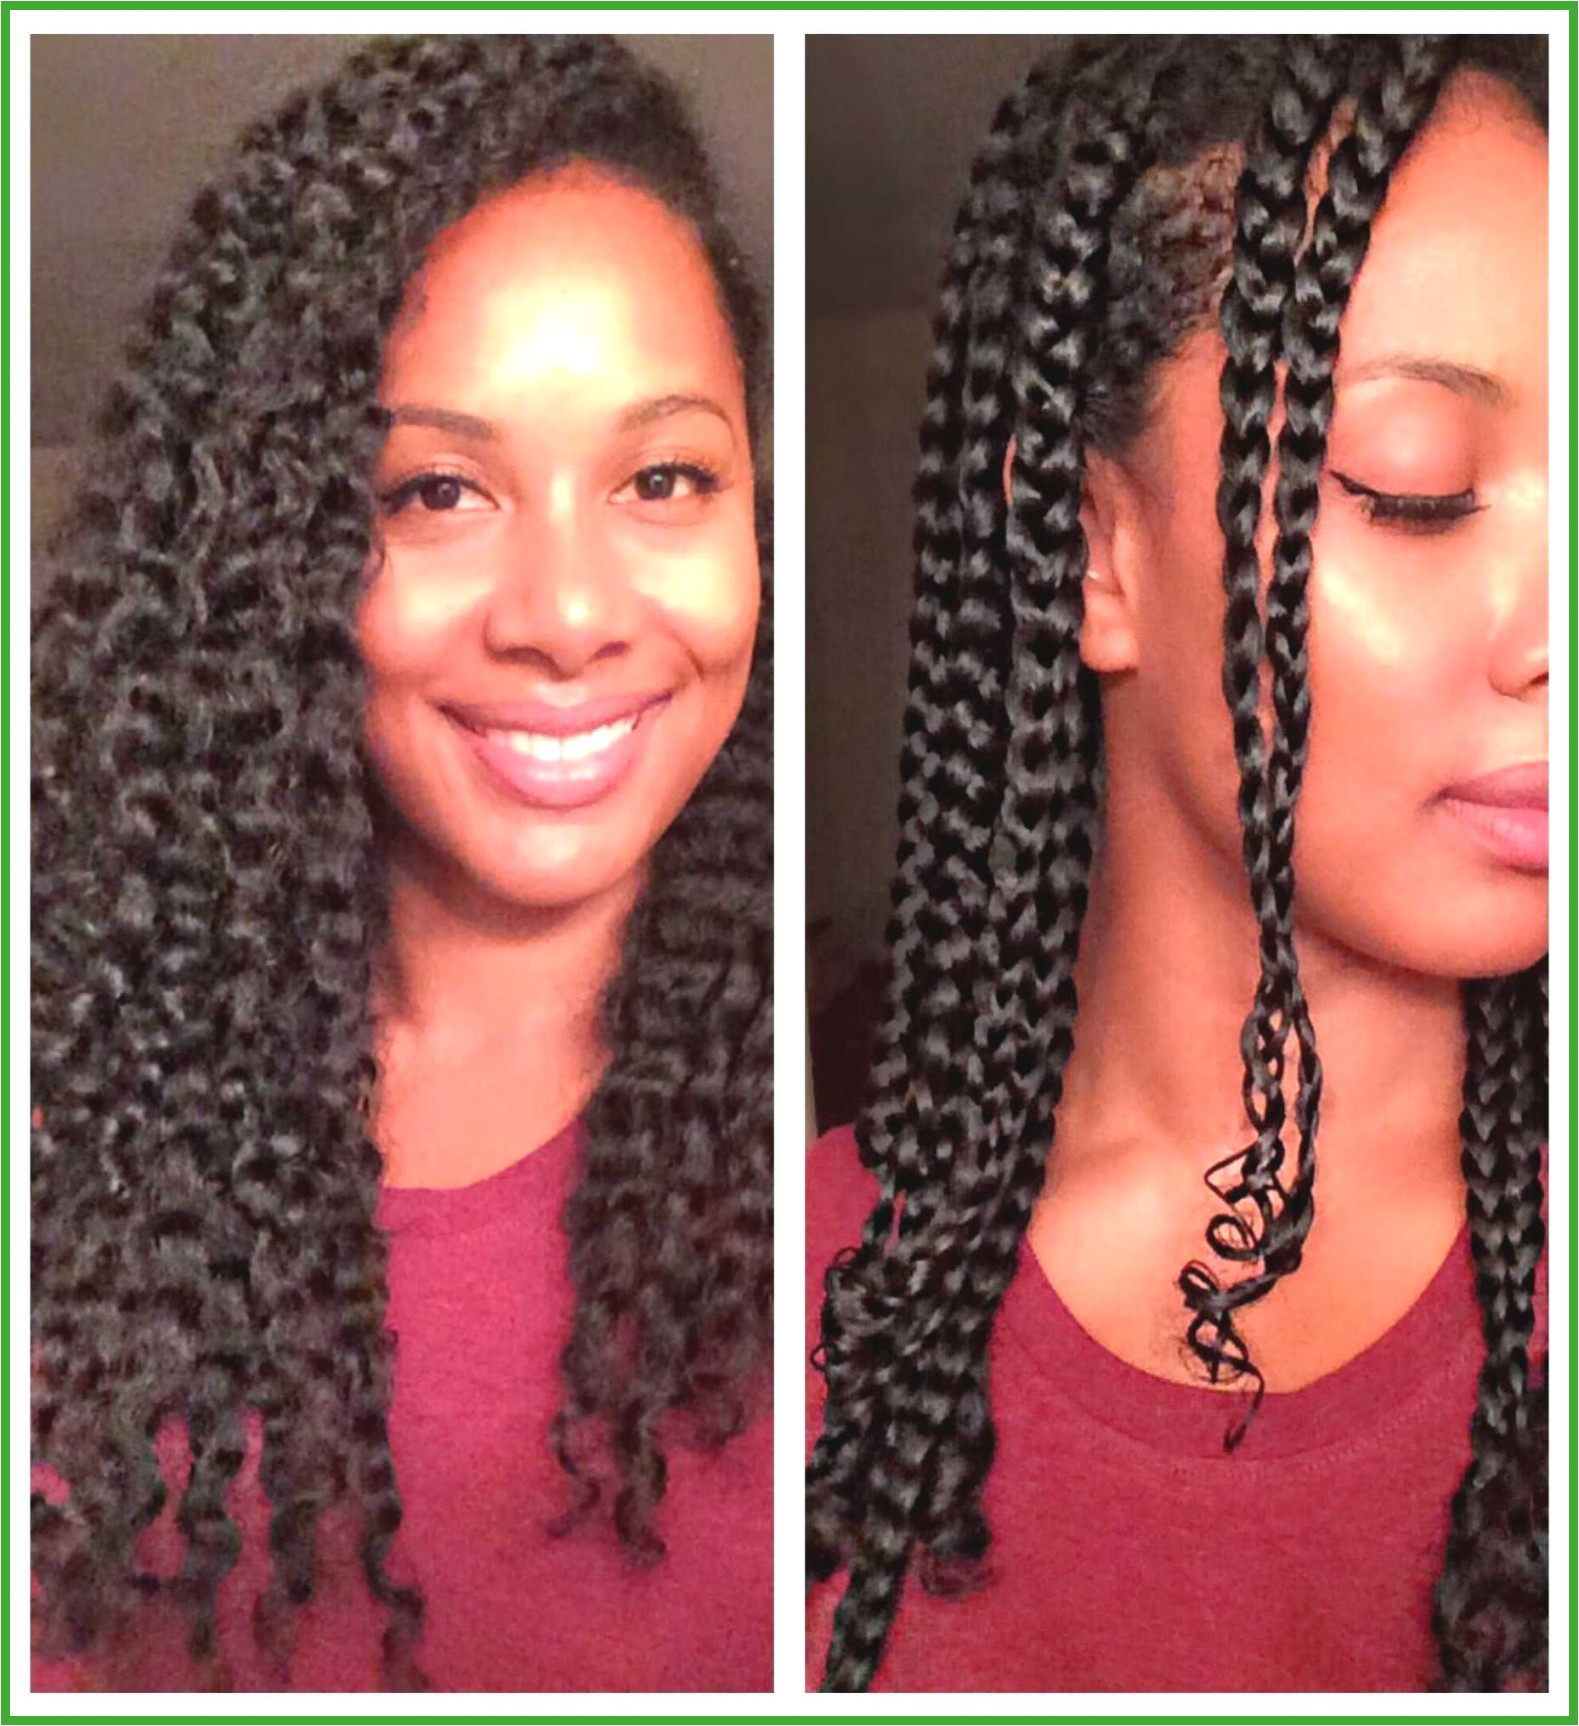 Black Hairstyles with Braids and Curls Braided Hairstyles for Black Hair top 8 E Braid Hairstyles